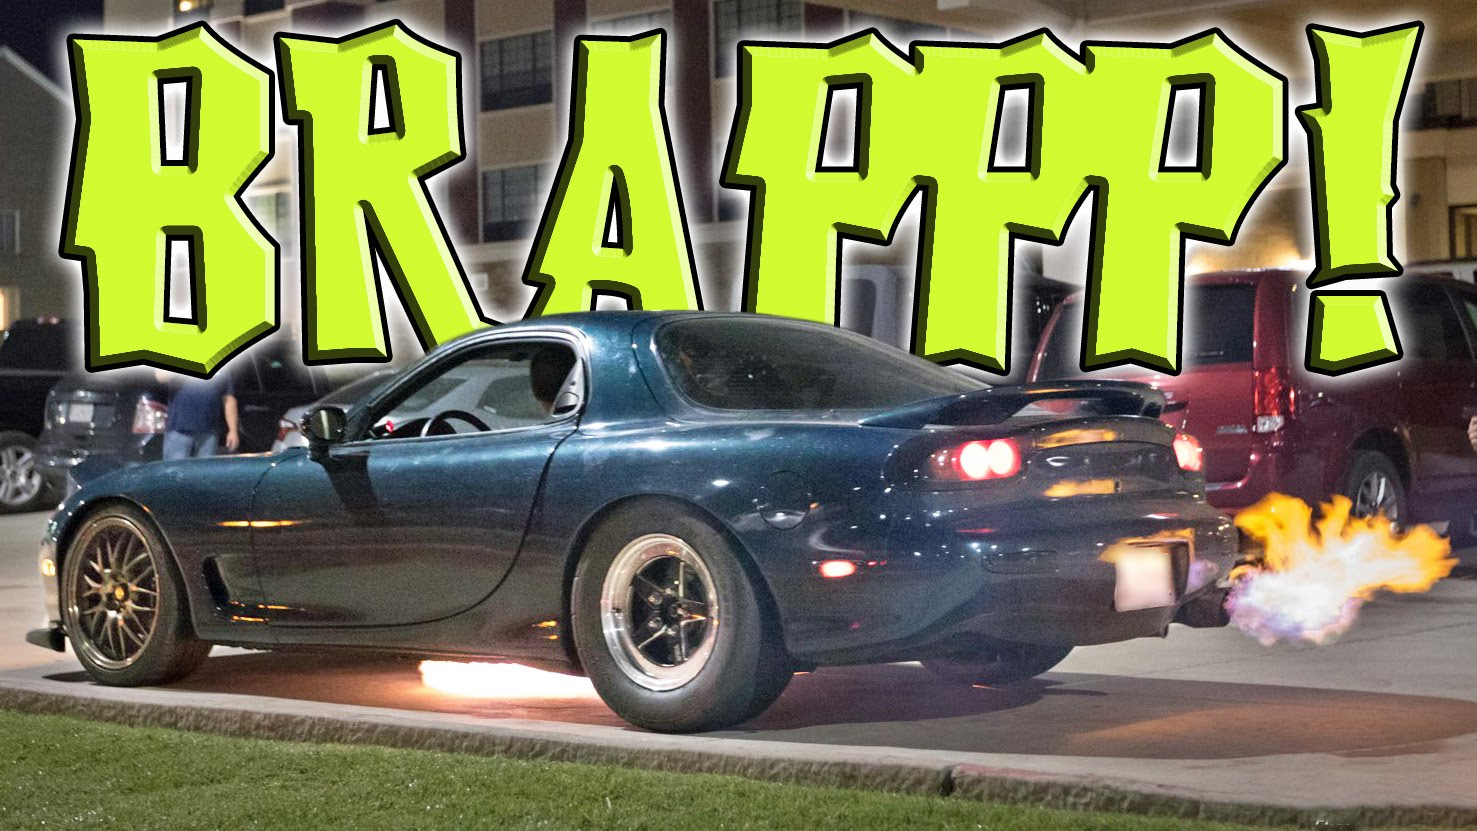 9,000 RPM Rotary Powered Mazda Belches Flames